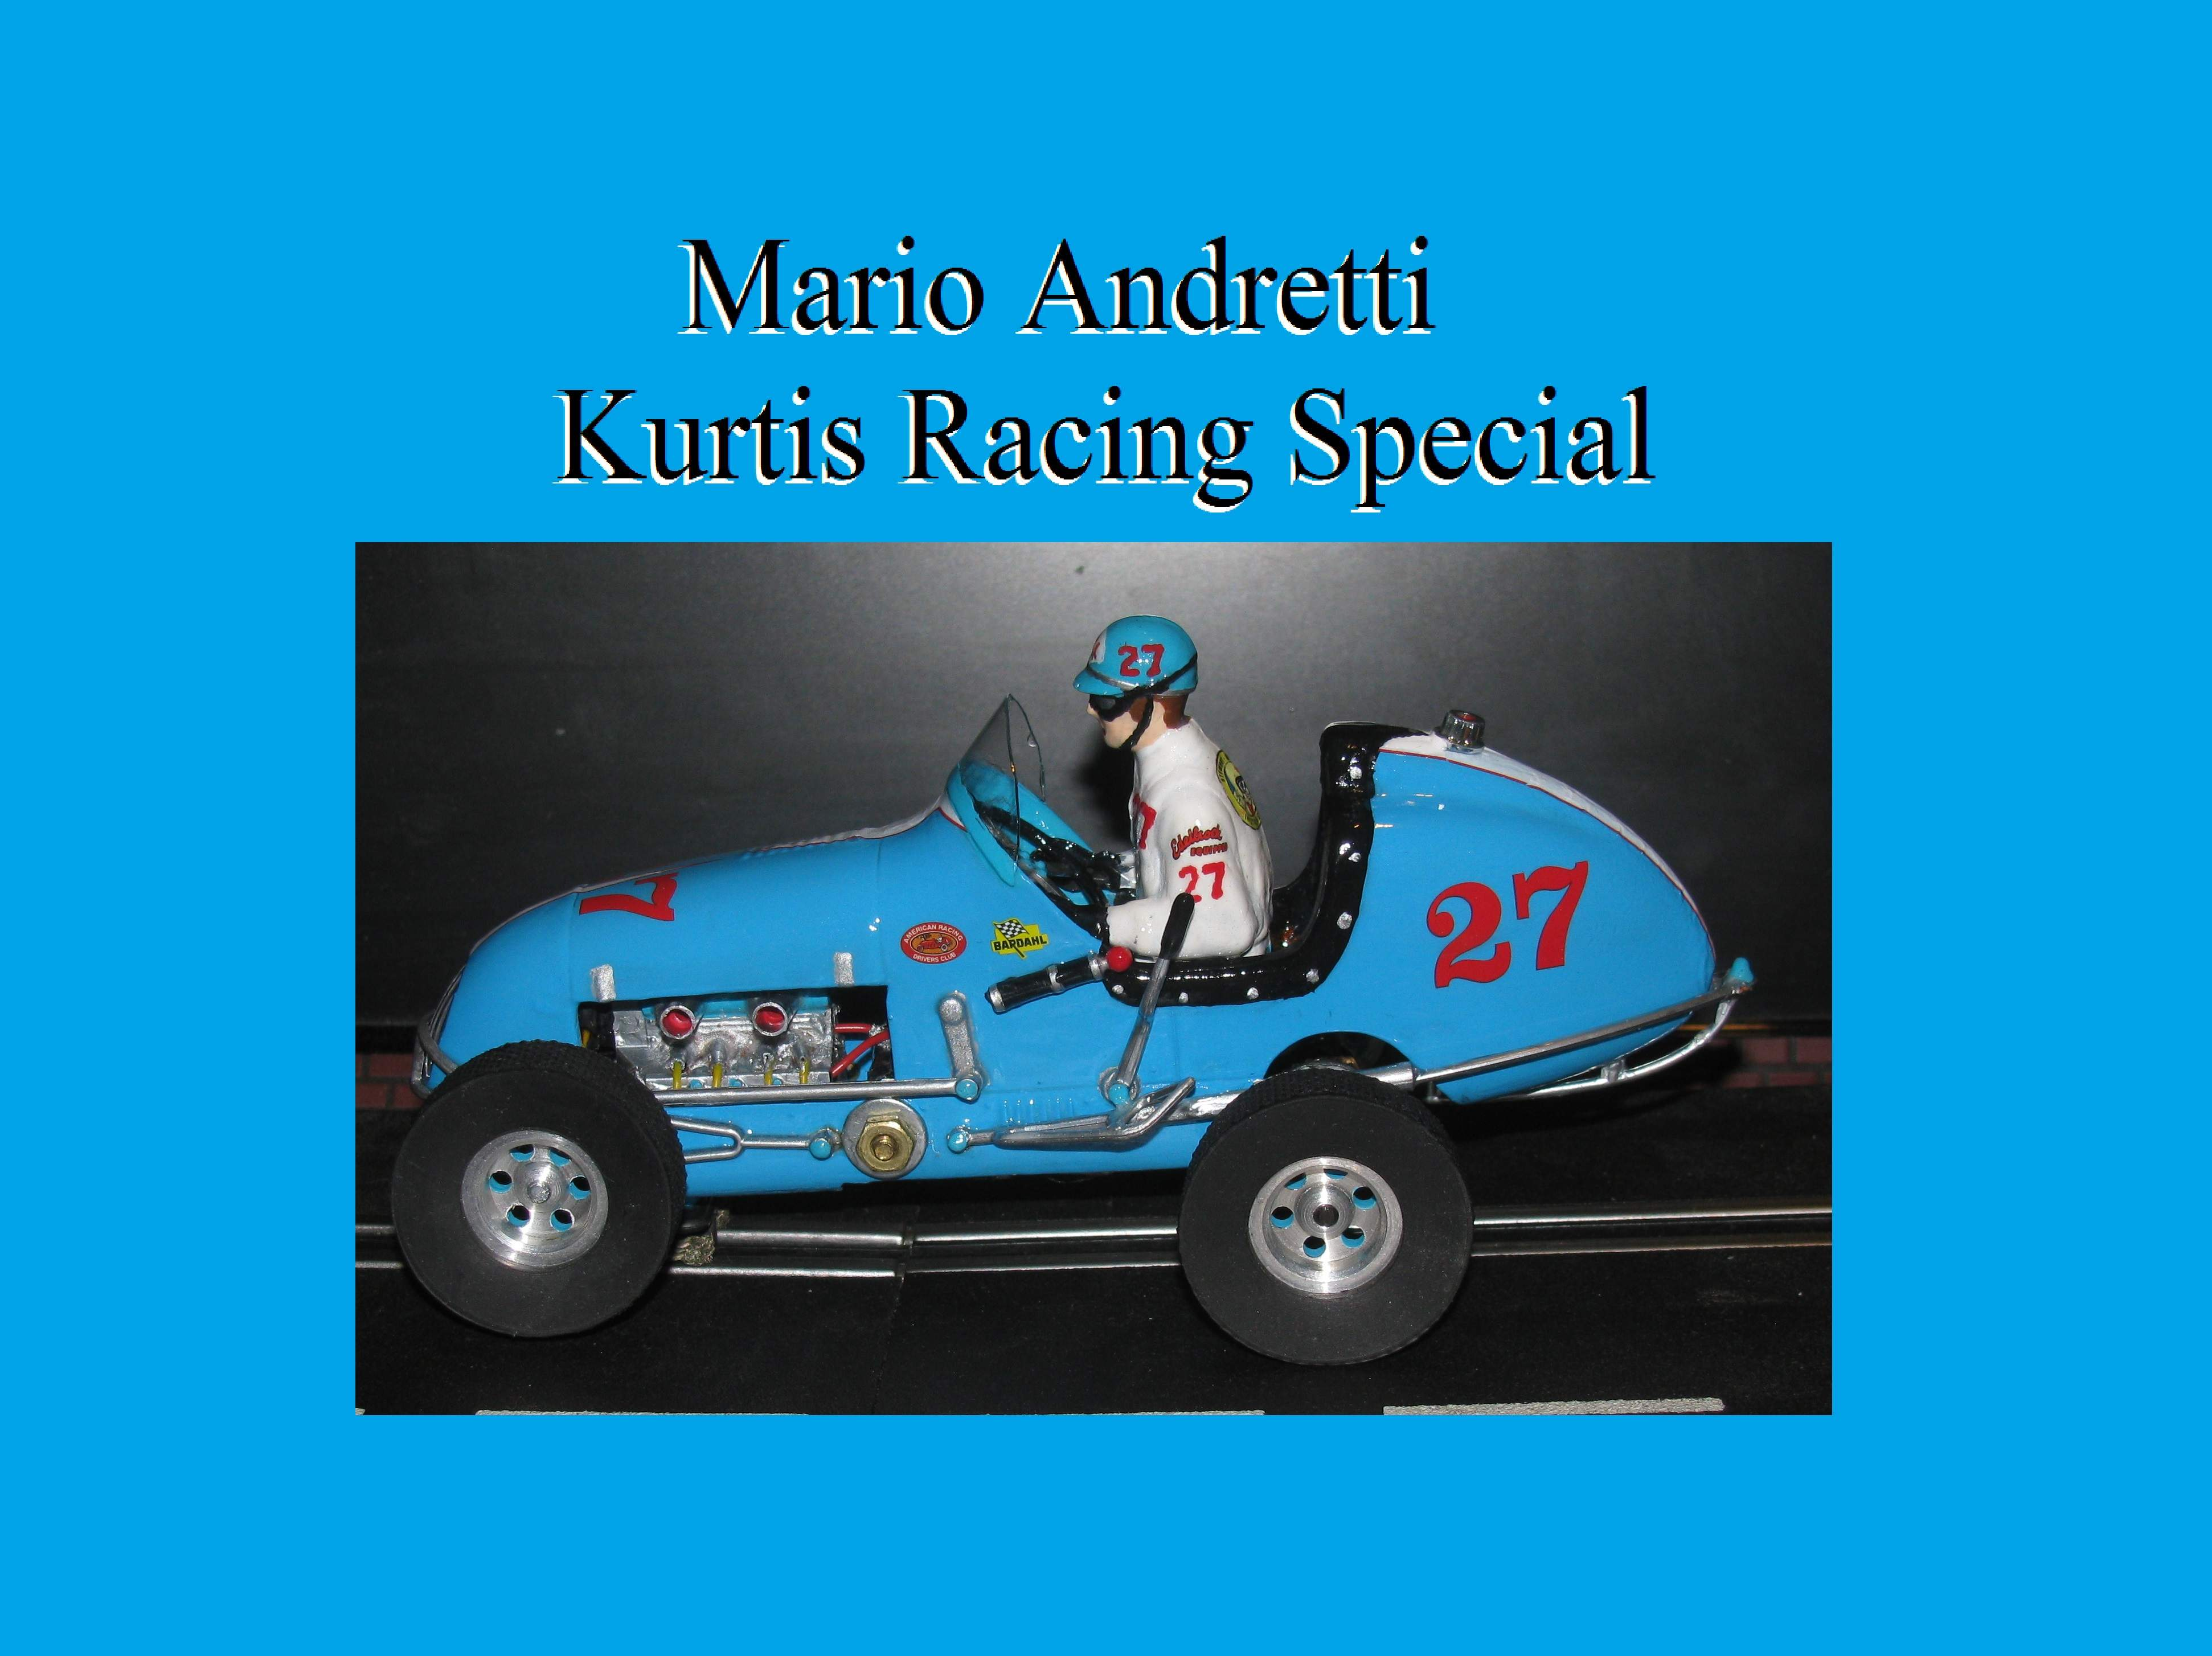 *SOLD* * SALE * Midget Racer Mario Andretti Kurtis Racing Special Slot Car 1:24 Scale Car #27